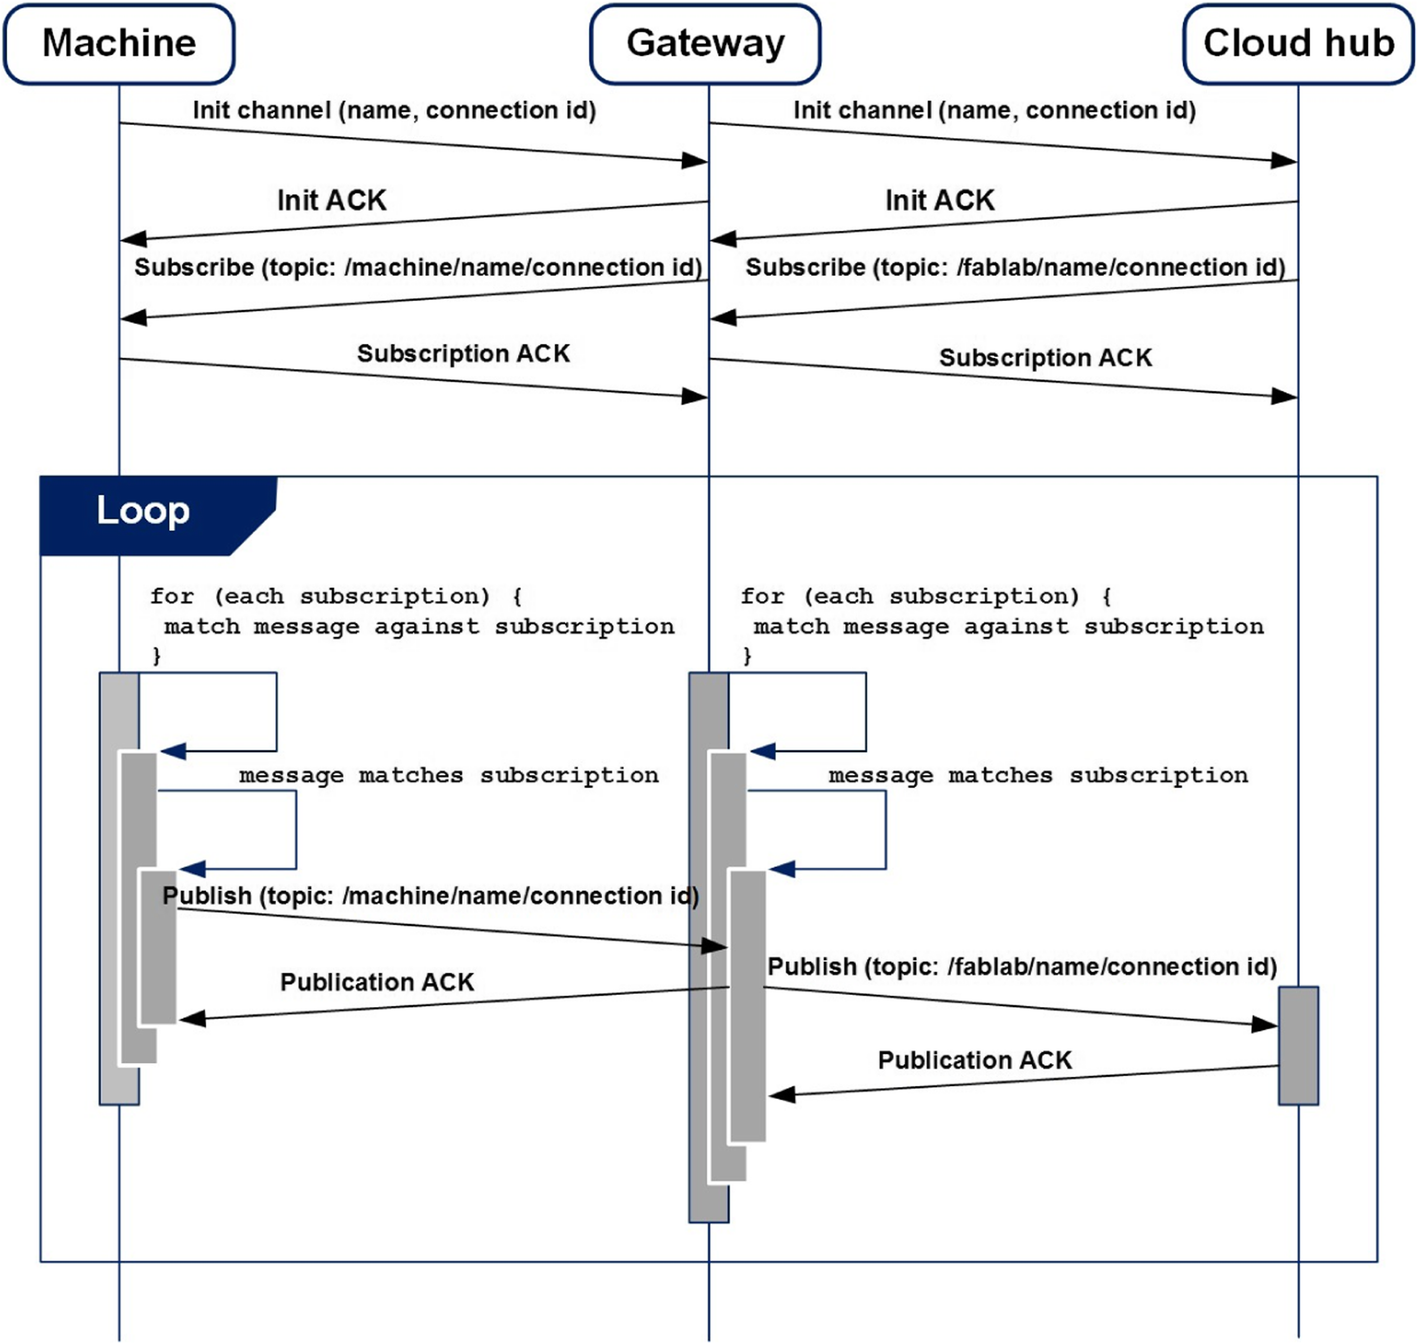 Design, simulation and testing of a cloud platform for